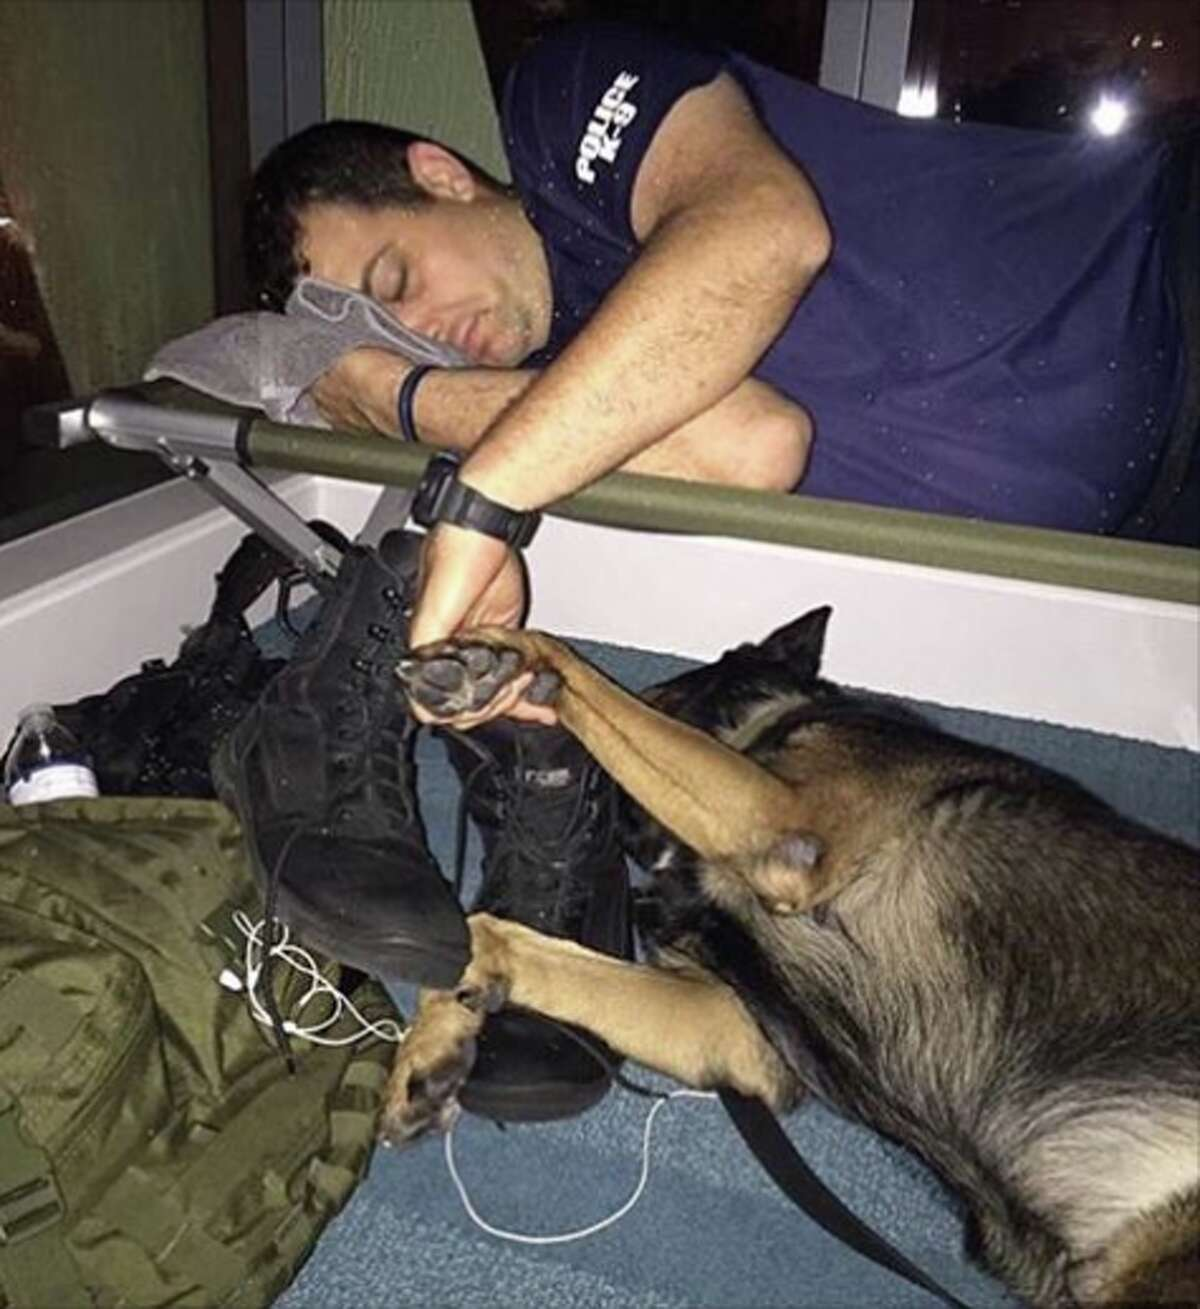 KTVU anchor Frank Somerville shares a heartwarming image by the Fort Lauderdale Police Department during Hurricane Irma.